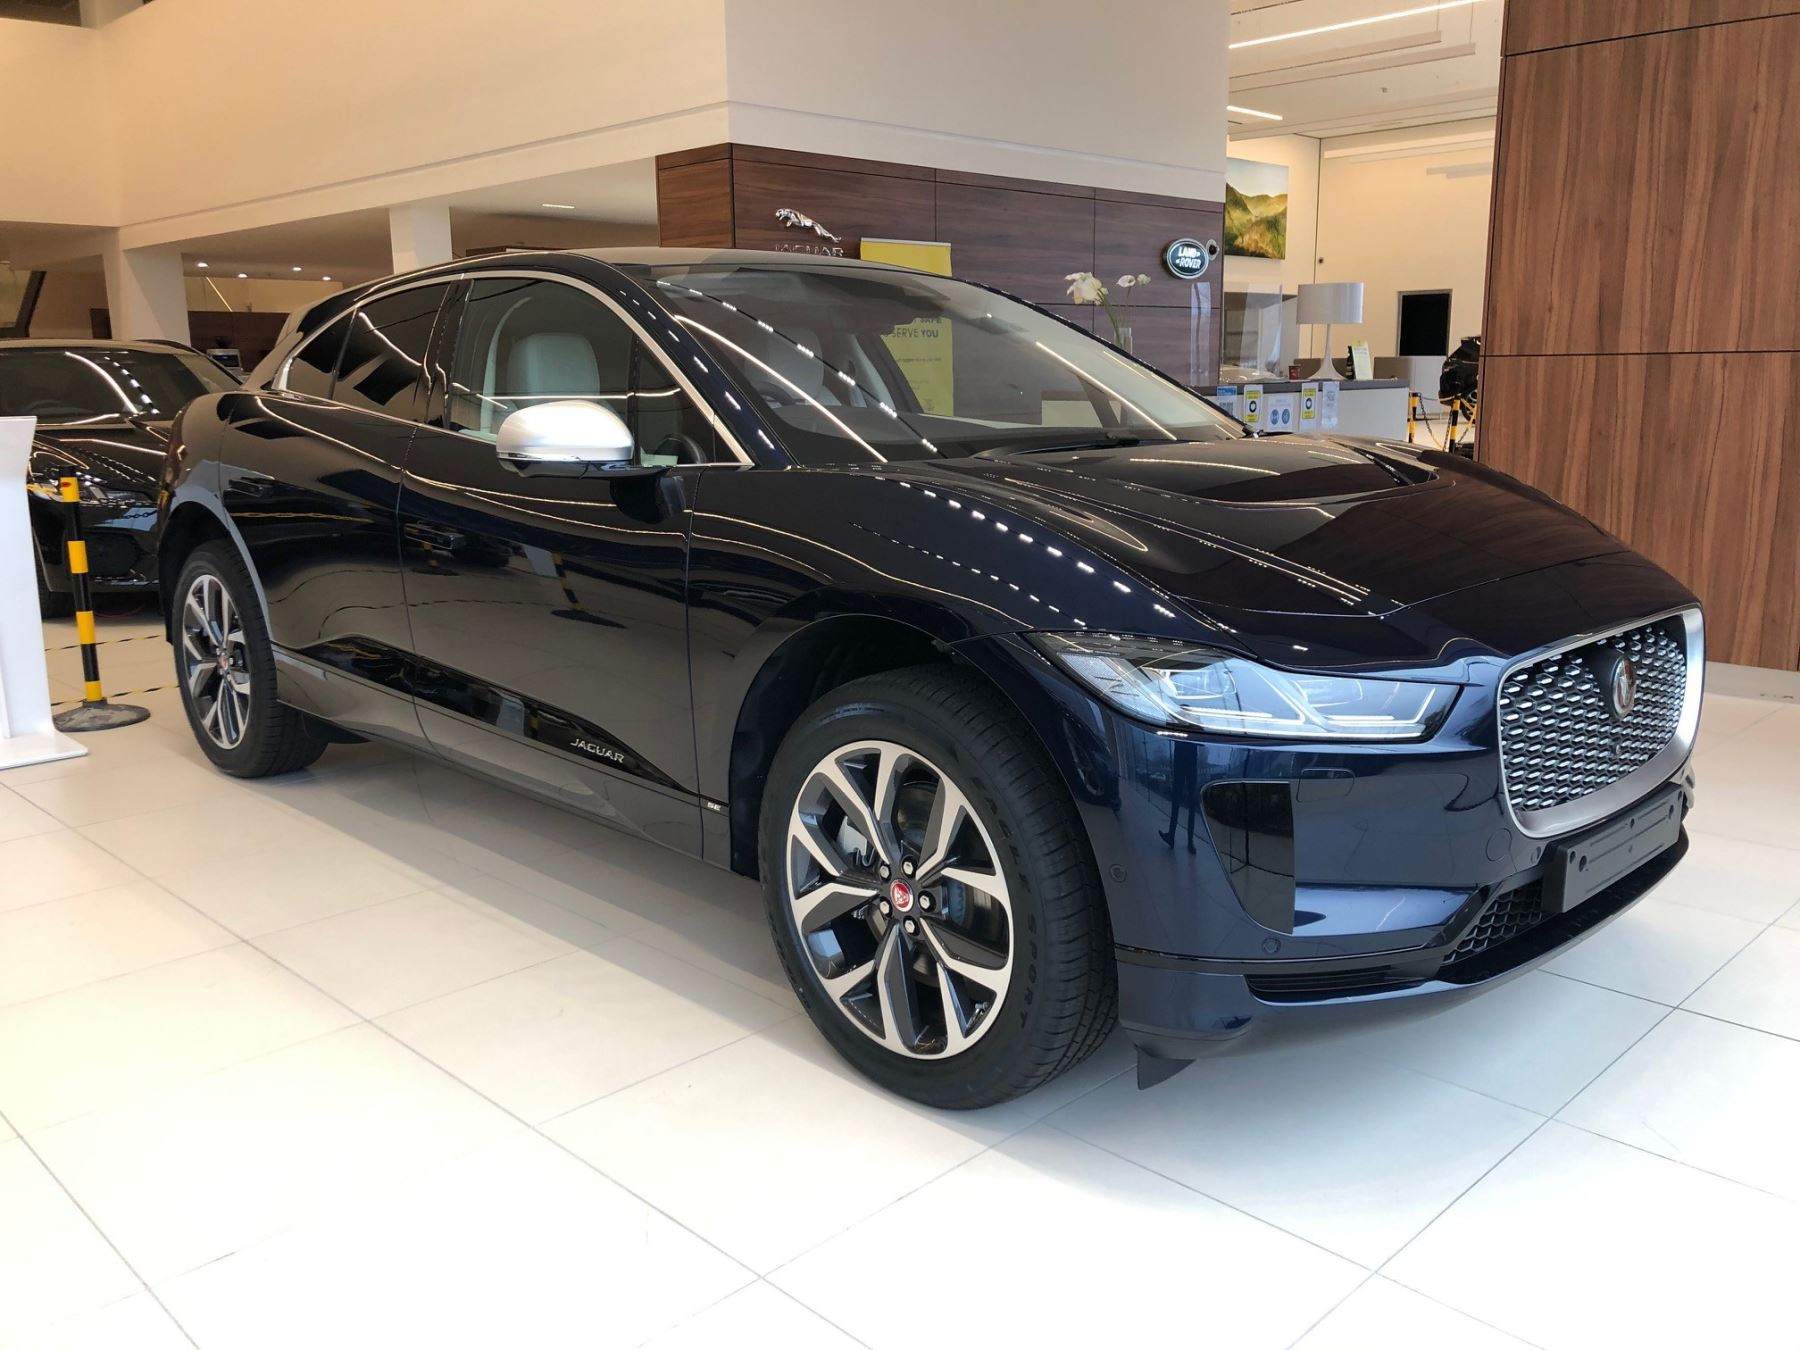 Jaguar I-PACE 2021 Model Year EV400 HSE AWD image 2